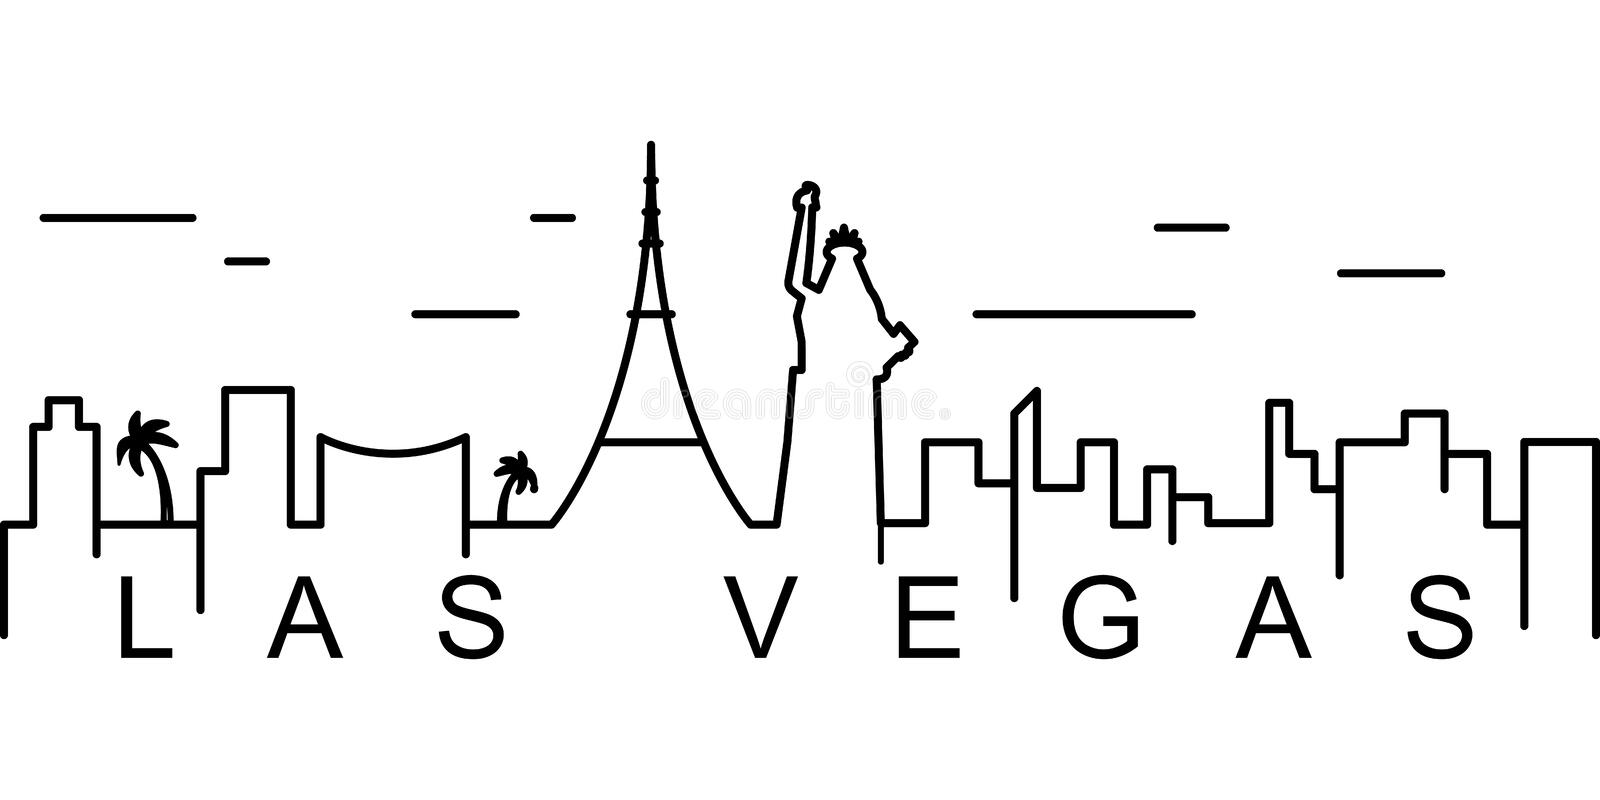 Las Vegas outline icon. Can be used for web, logo, mobile app, UI, UX stock illustration